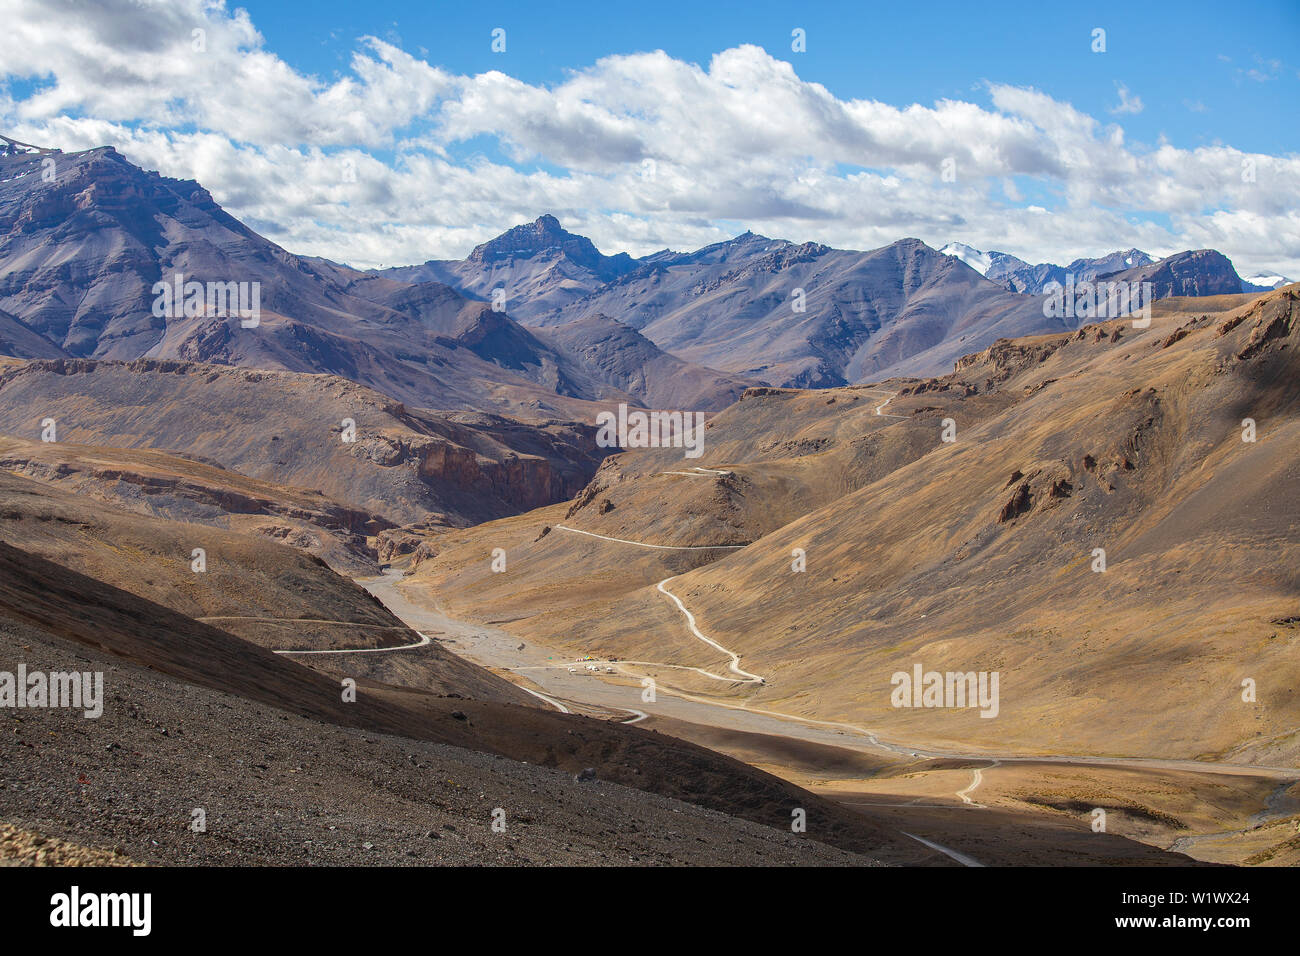 Himalayan mountain landscape along Leh to Manali highway in India. Winding road and majestic rocky mountains in Indian Himalayas, Ladakh, Jammu and Ka Stock Photo